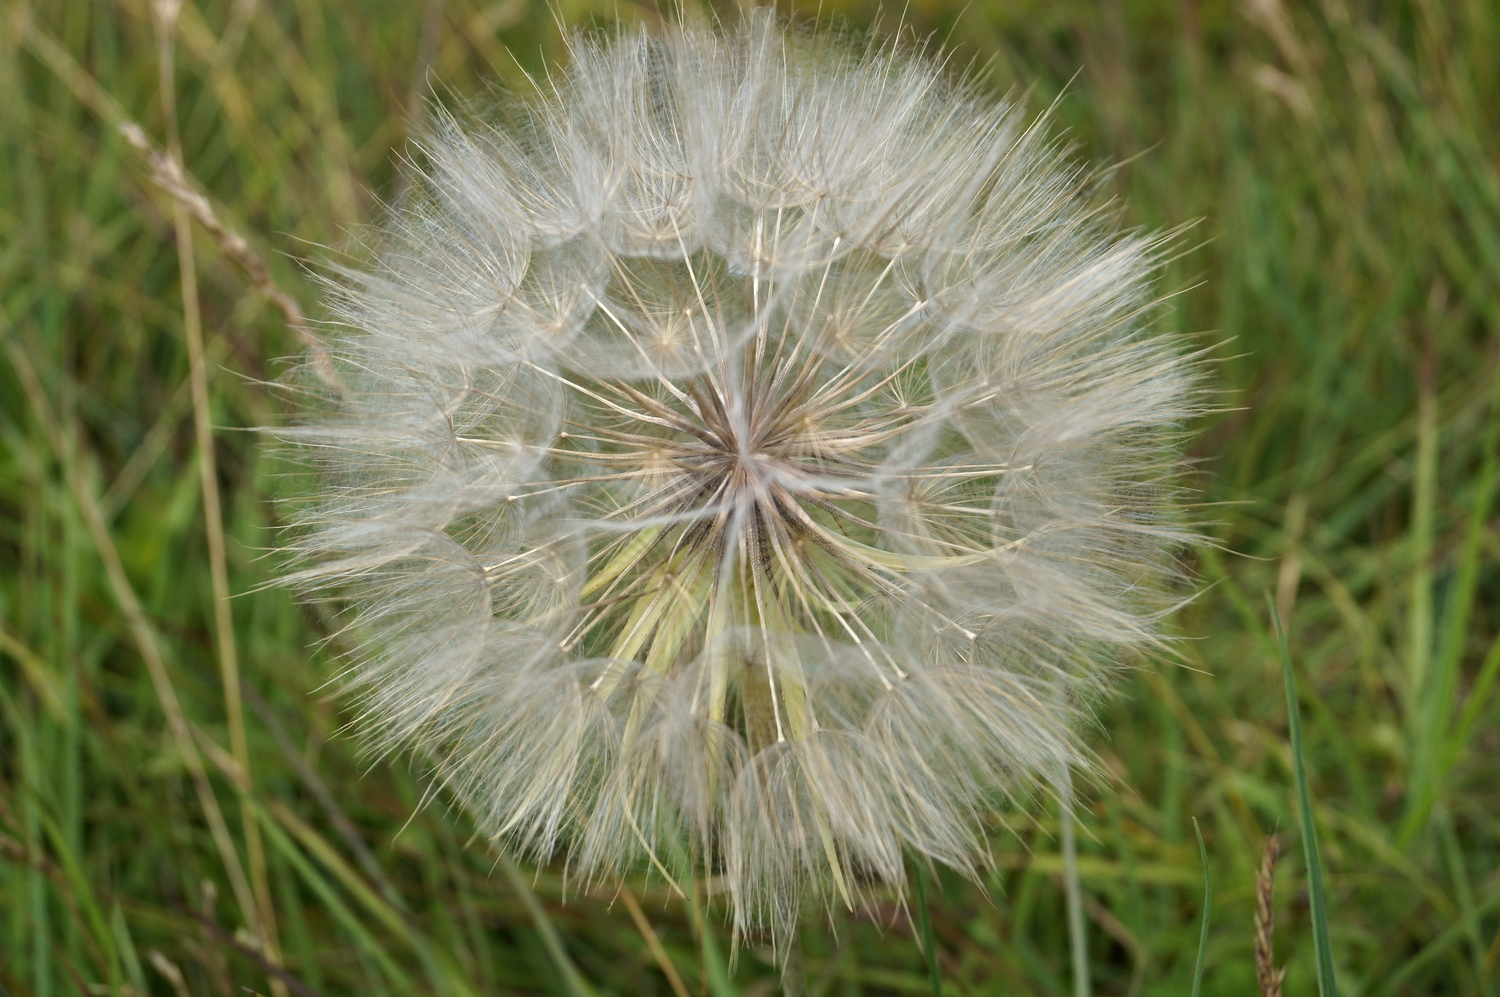 Just a close up of a dandelion? Or is there more?